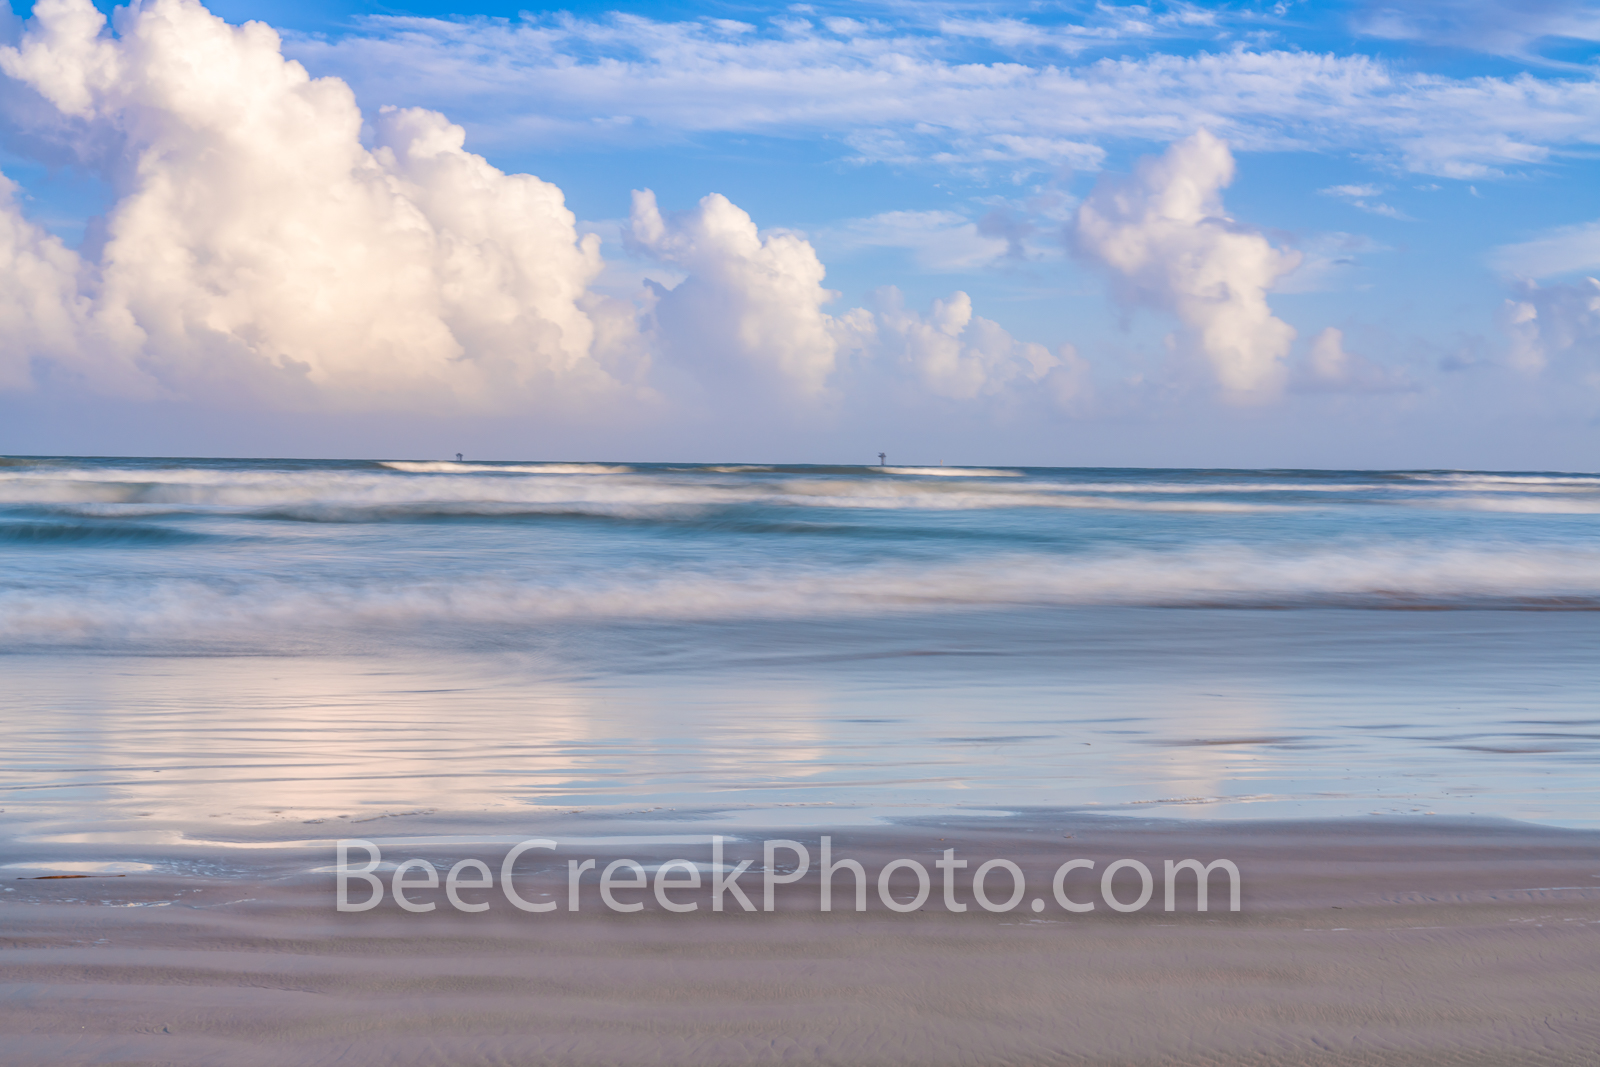 port aransas, beach, clouds, gulf of mexico, port a, sea, ocean, blue, clouds, reflections, reflect, beautiful, pastel, colors, colorful, seascape, beach scene, texas coast, coastal, waterscape,